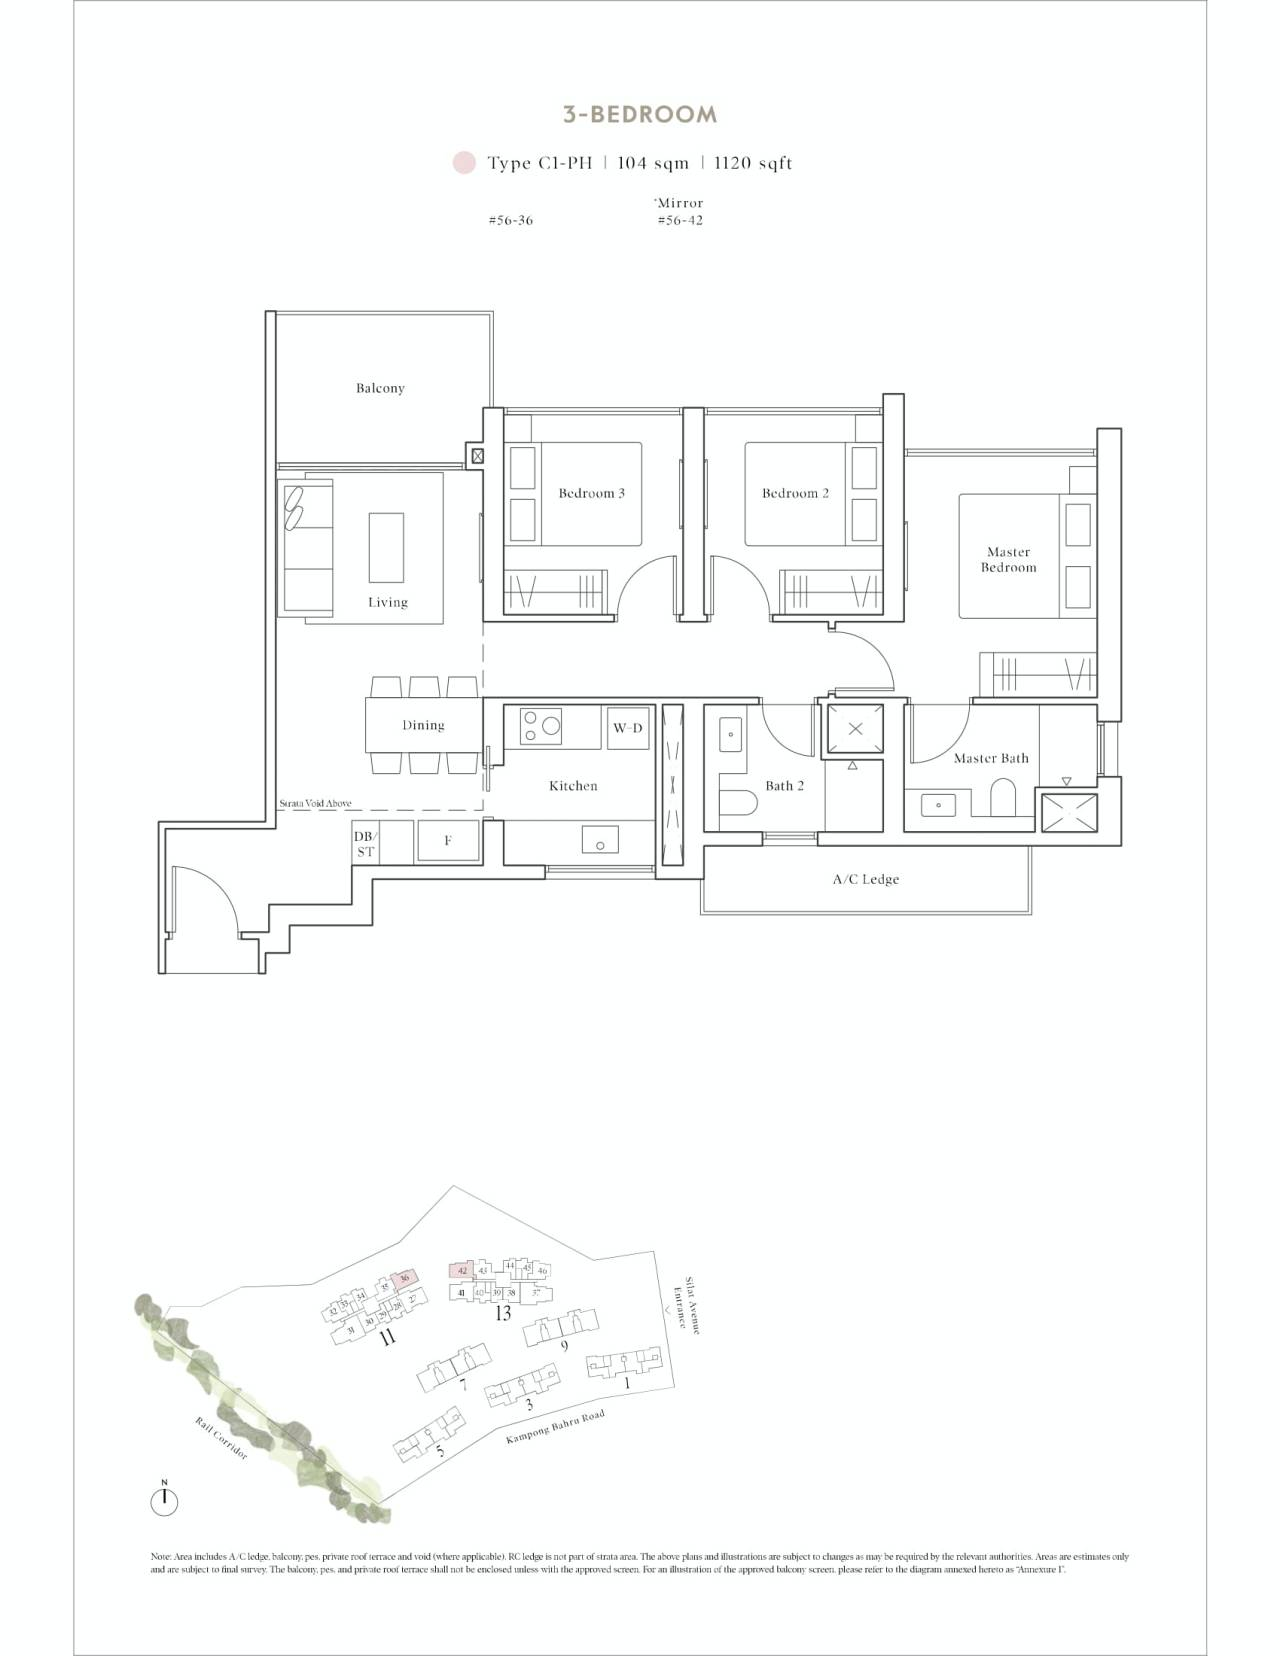 Avenue South Residence Typical 3 Bedroom